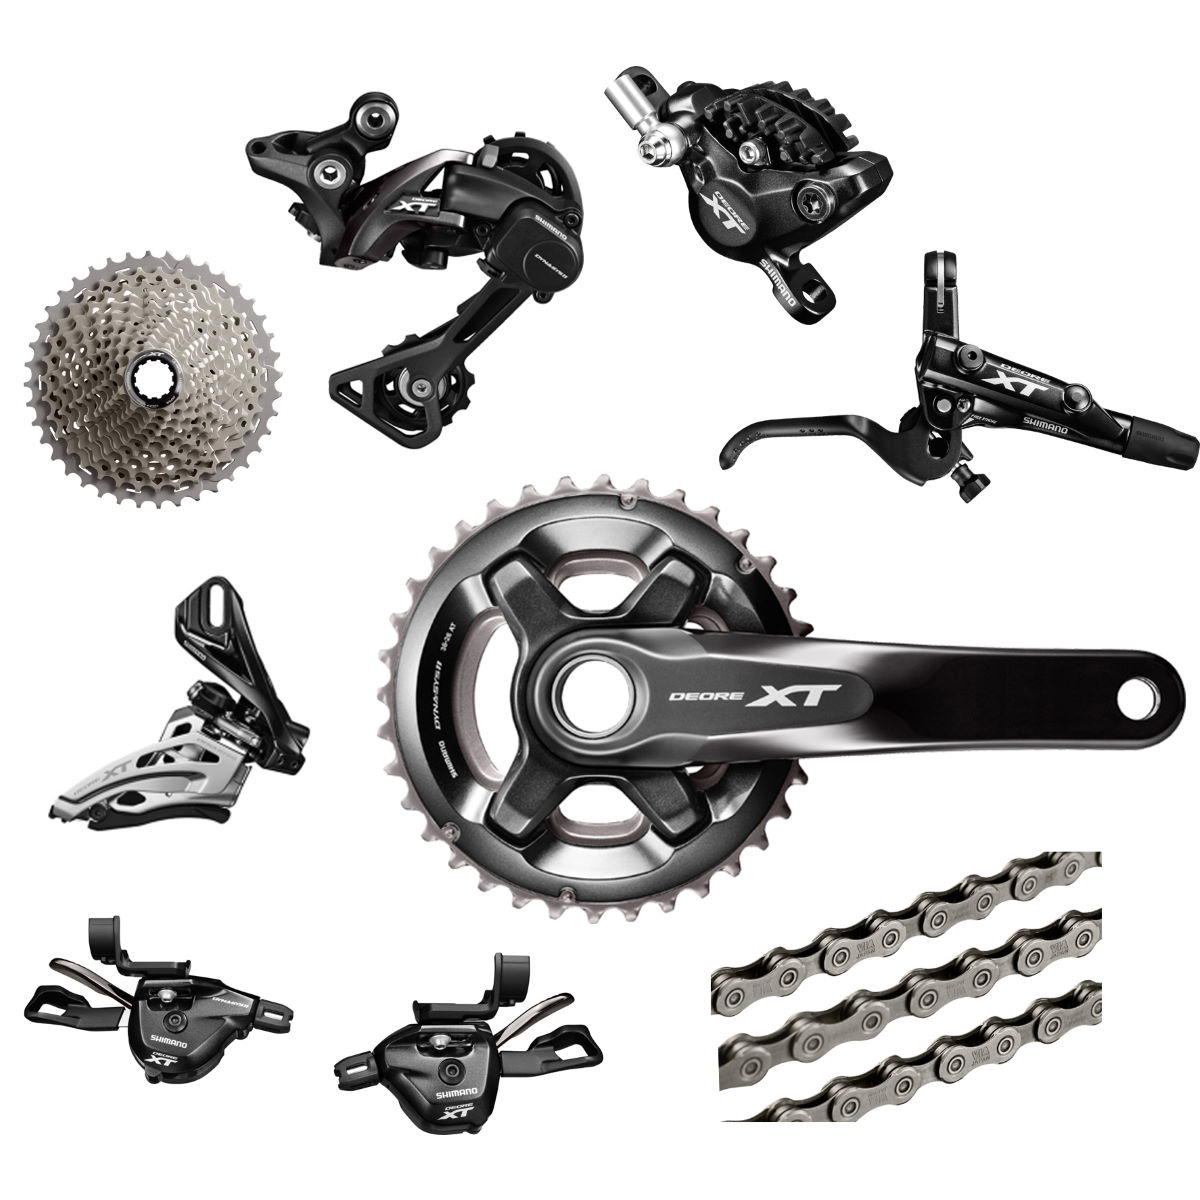 Shimano Deore XT M8000 Groupset with Double Chainset